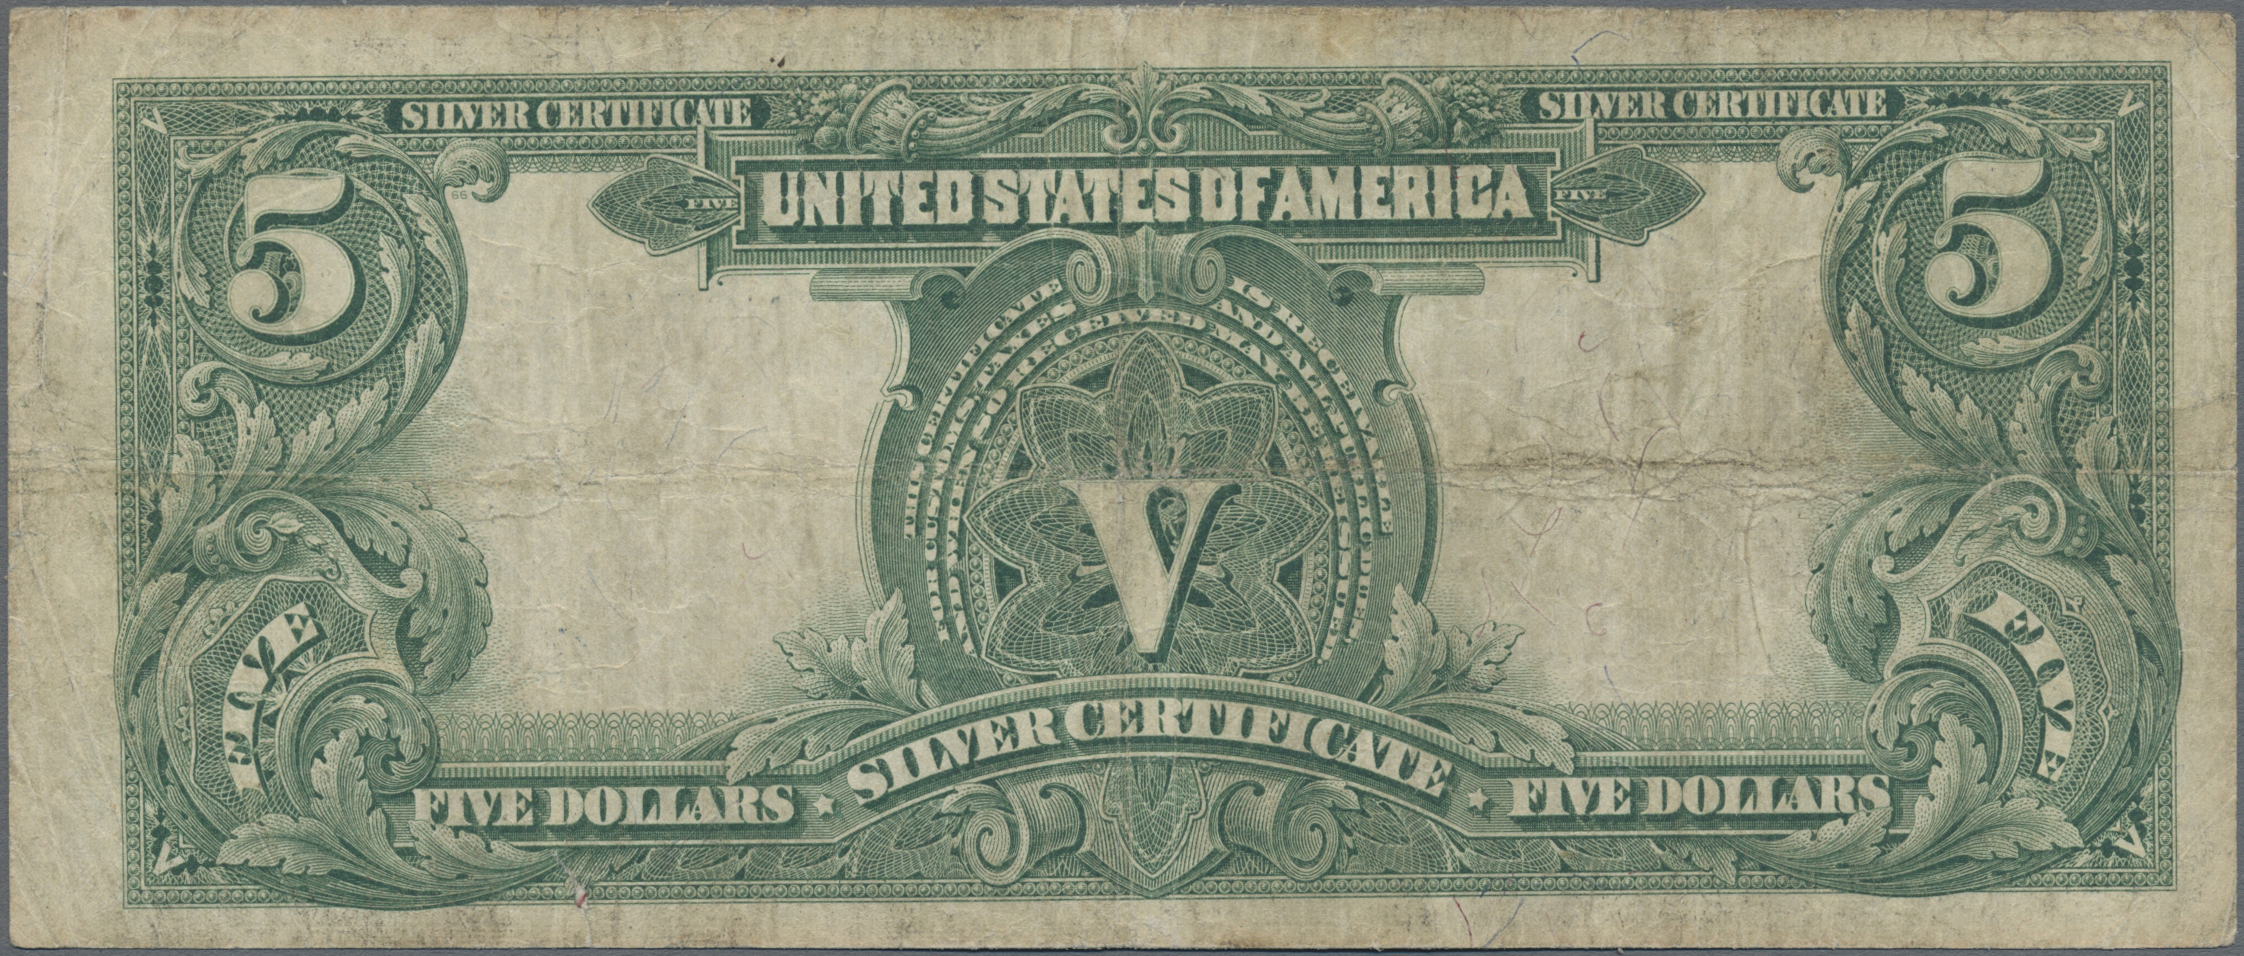 Lot 00905 - United States of America | Banknoten  -  Auktionshaus Christoph Gärtner GmbH & Co. KG Sale #48 The Banknotes